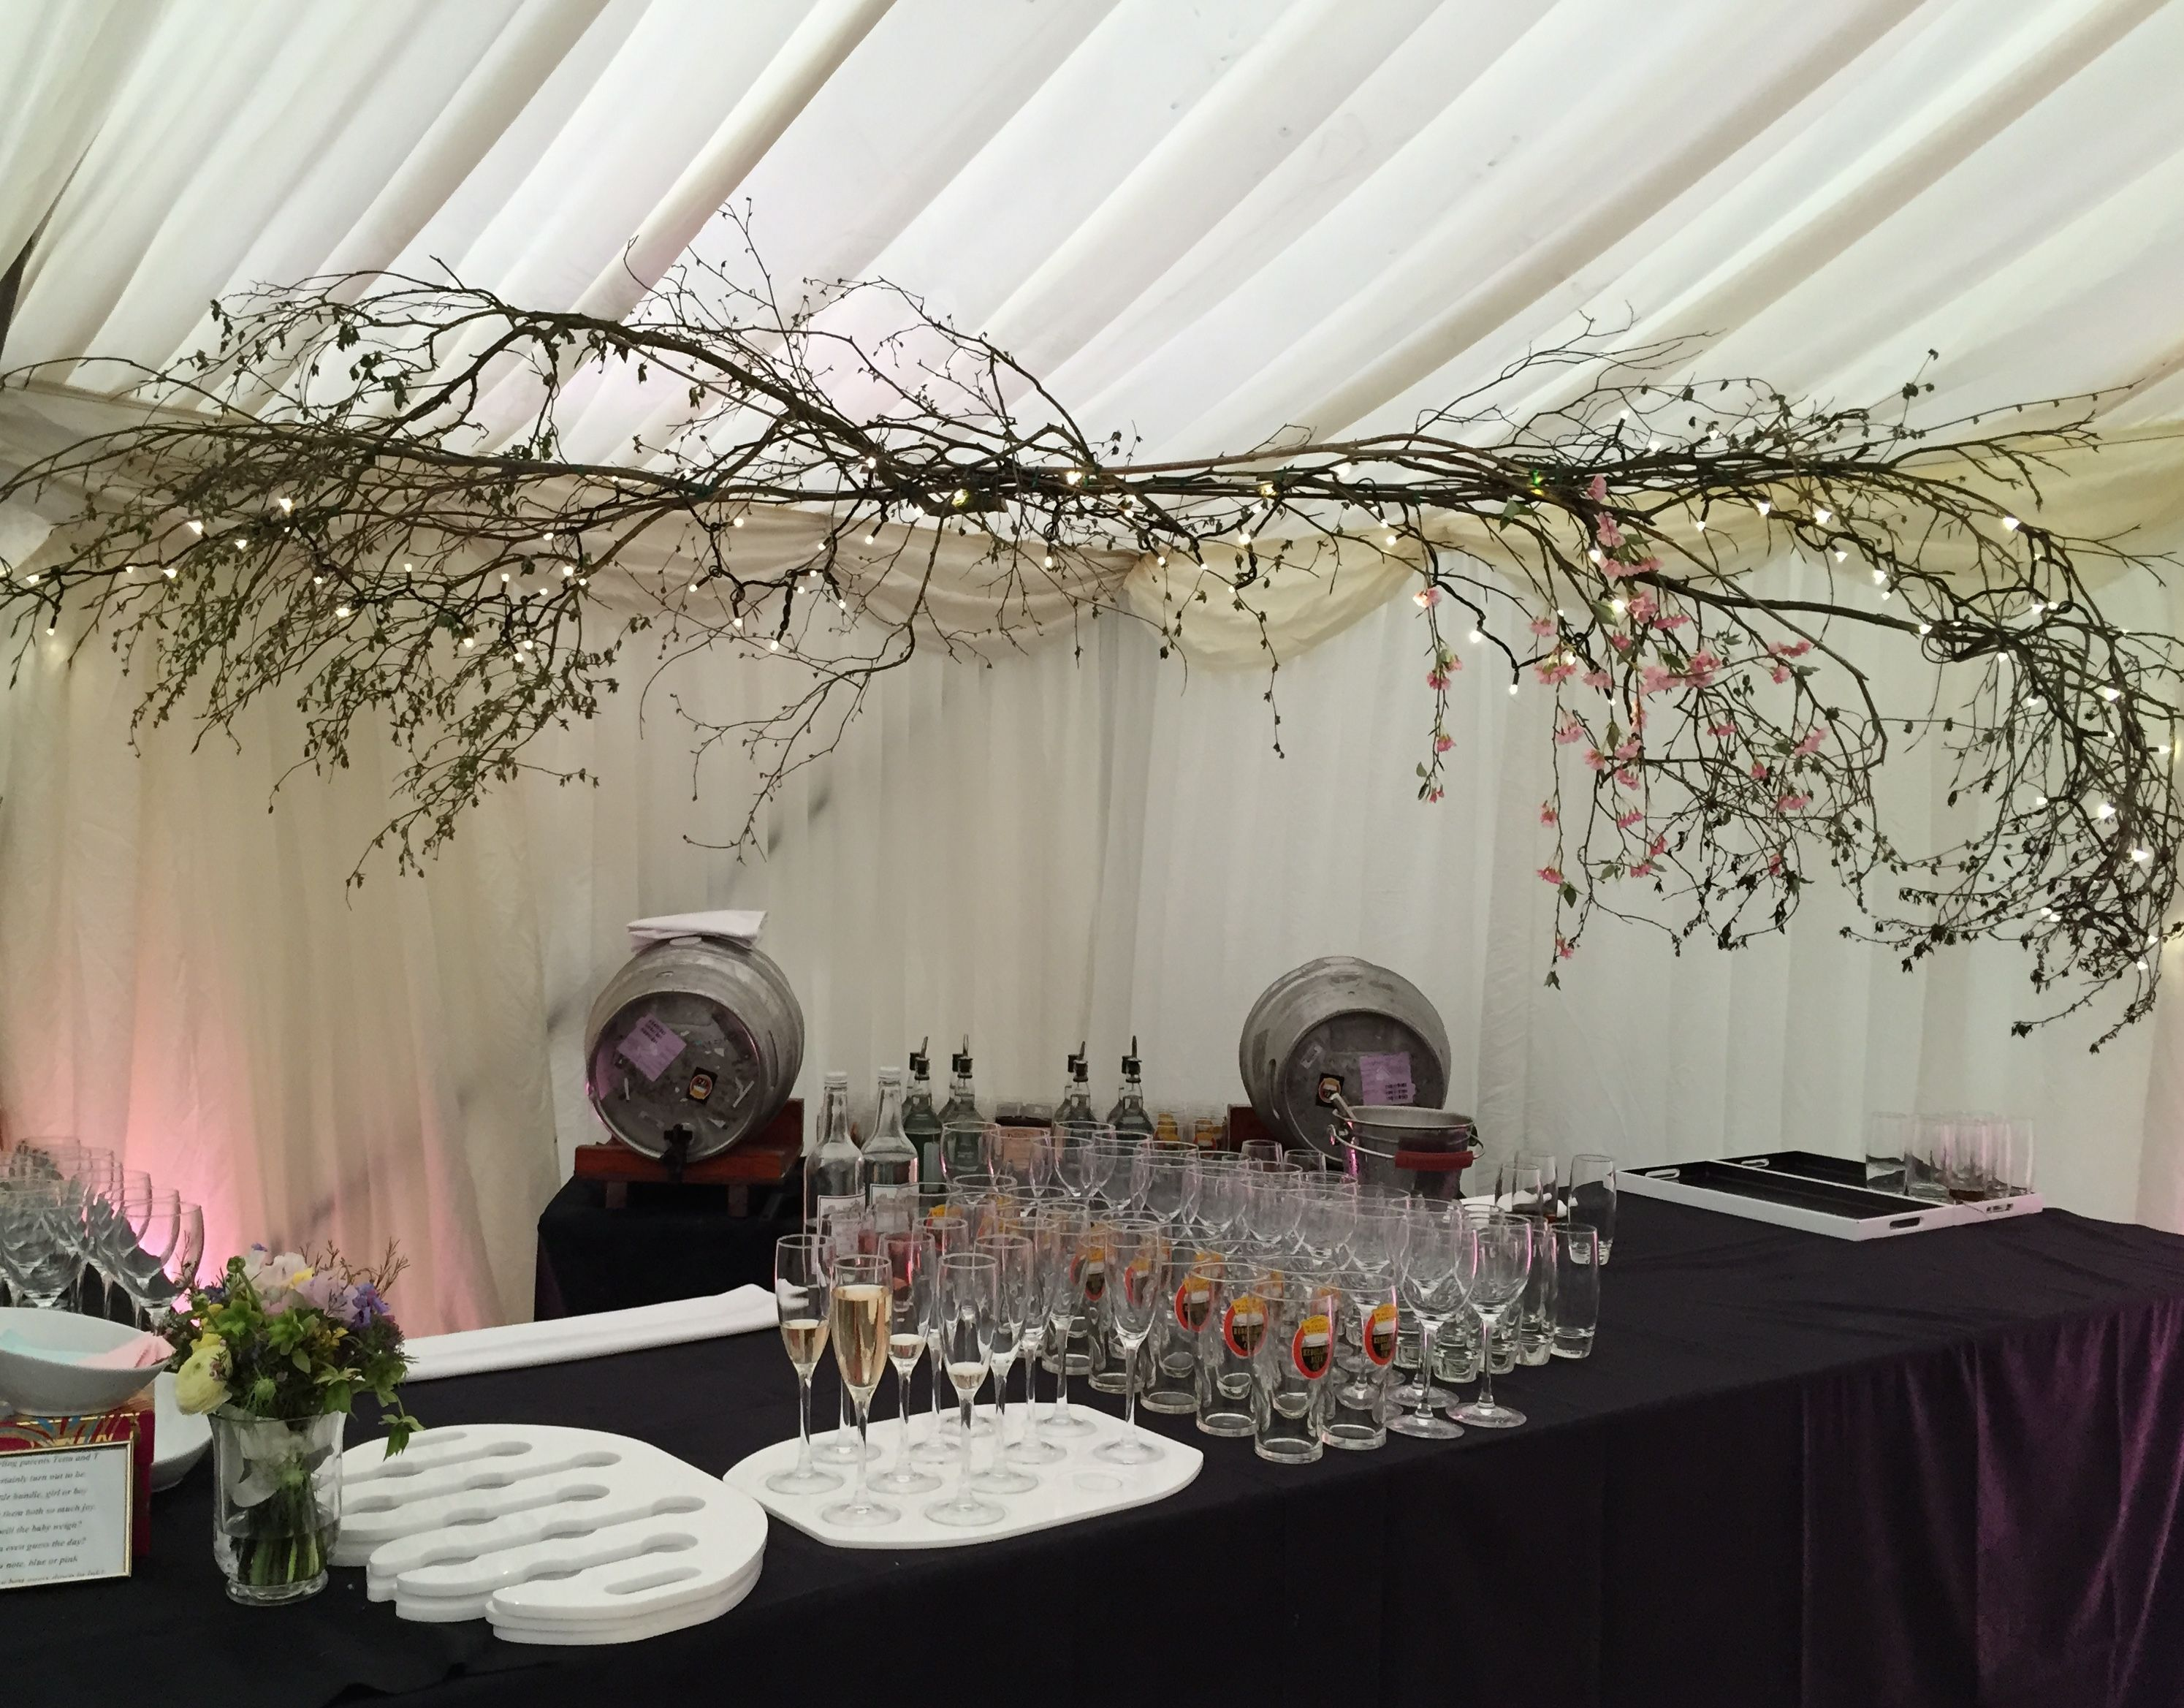 Spring Blossom Flowers Decorating Bar Area In Wedding Marquee. Beautiful  Country Rustic Feel. Free